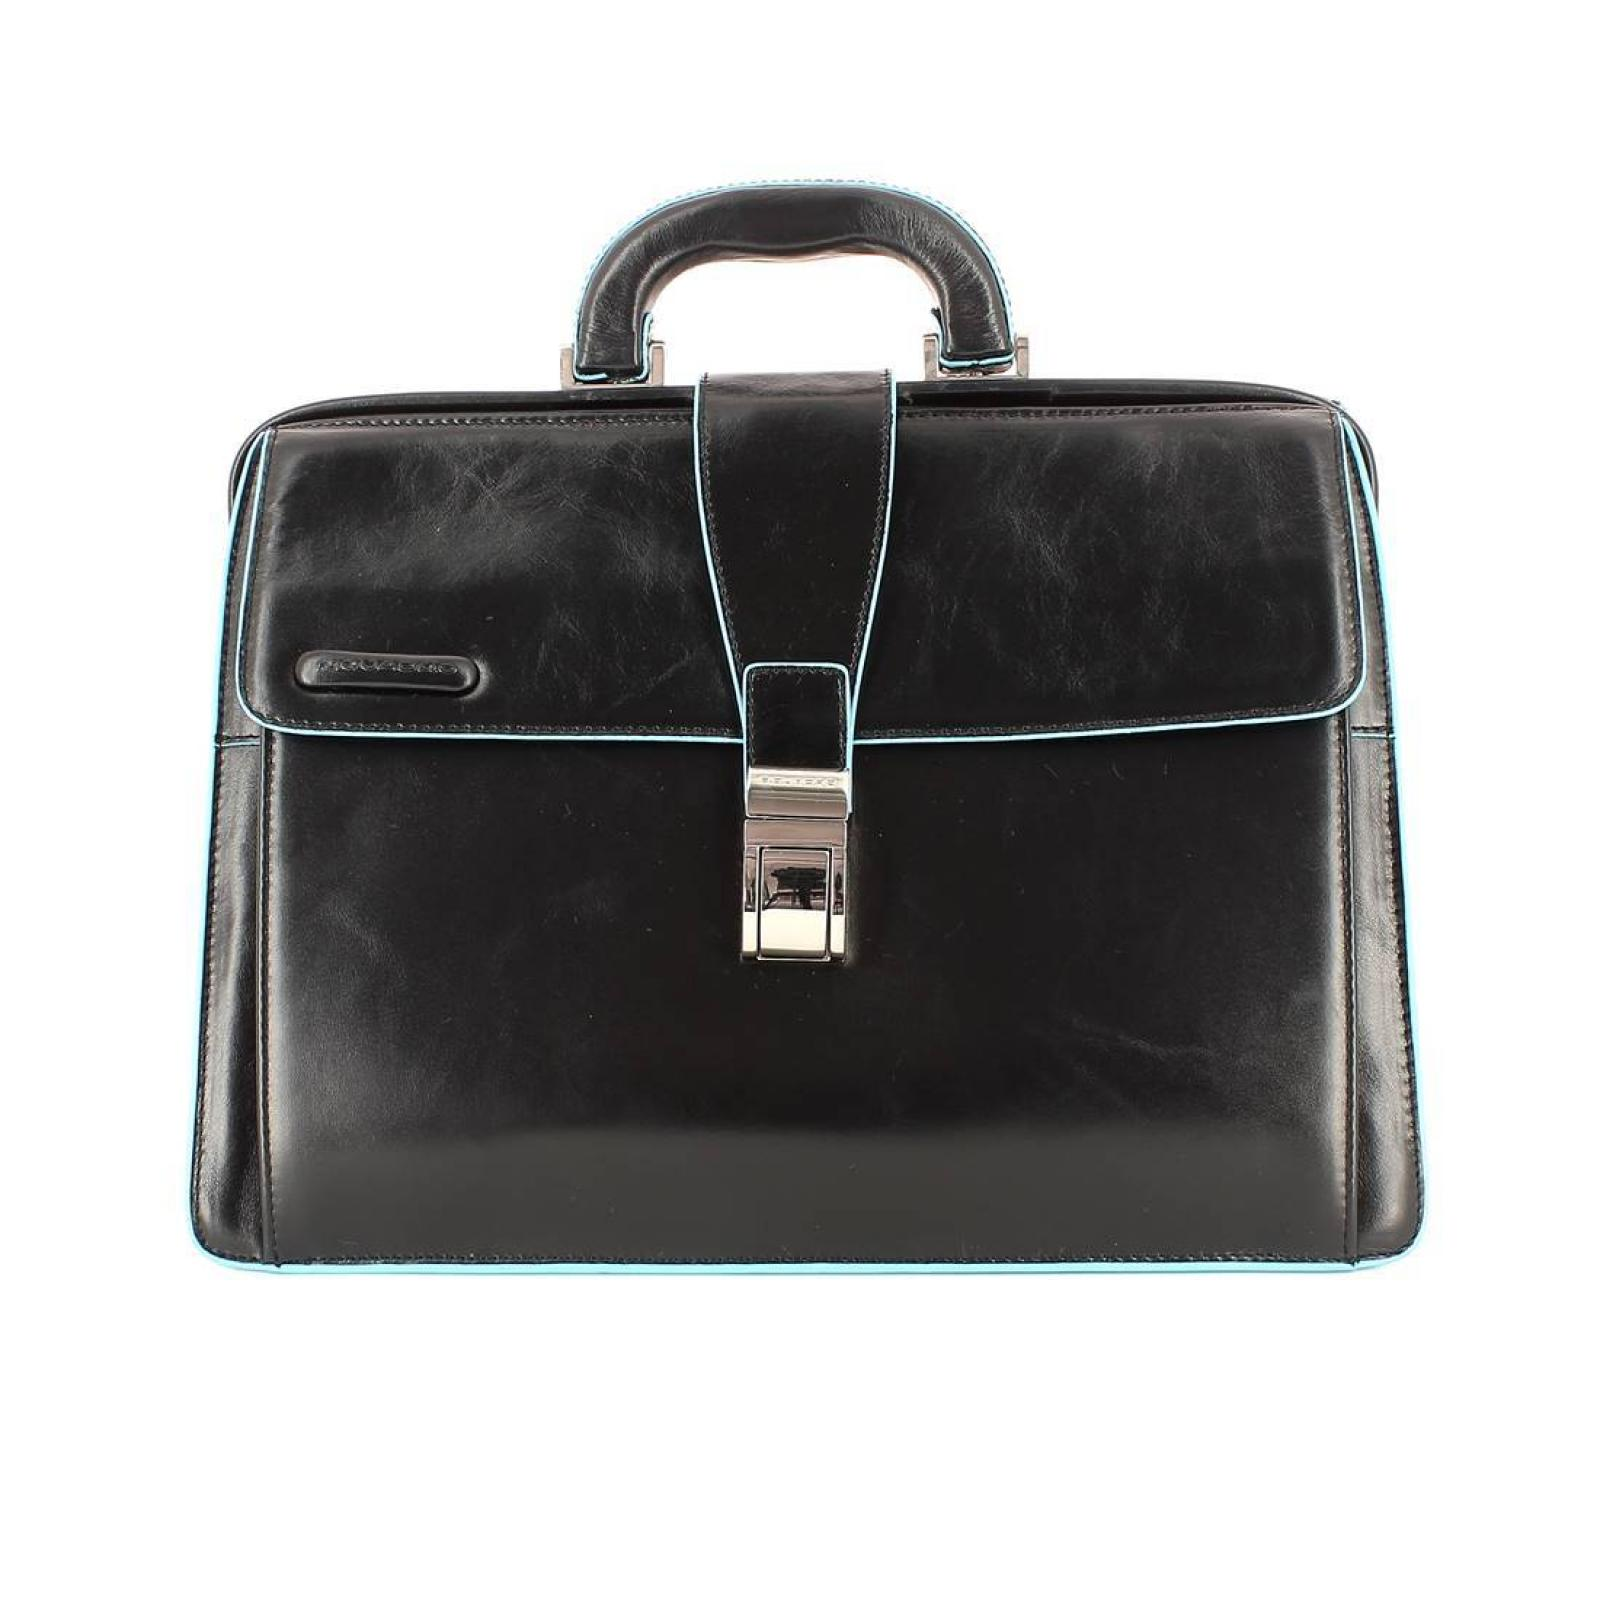 Doctor Bag Blue Square